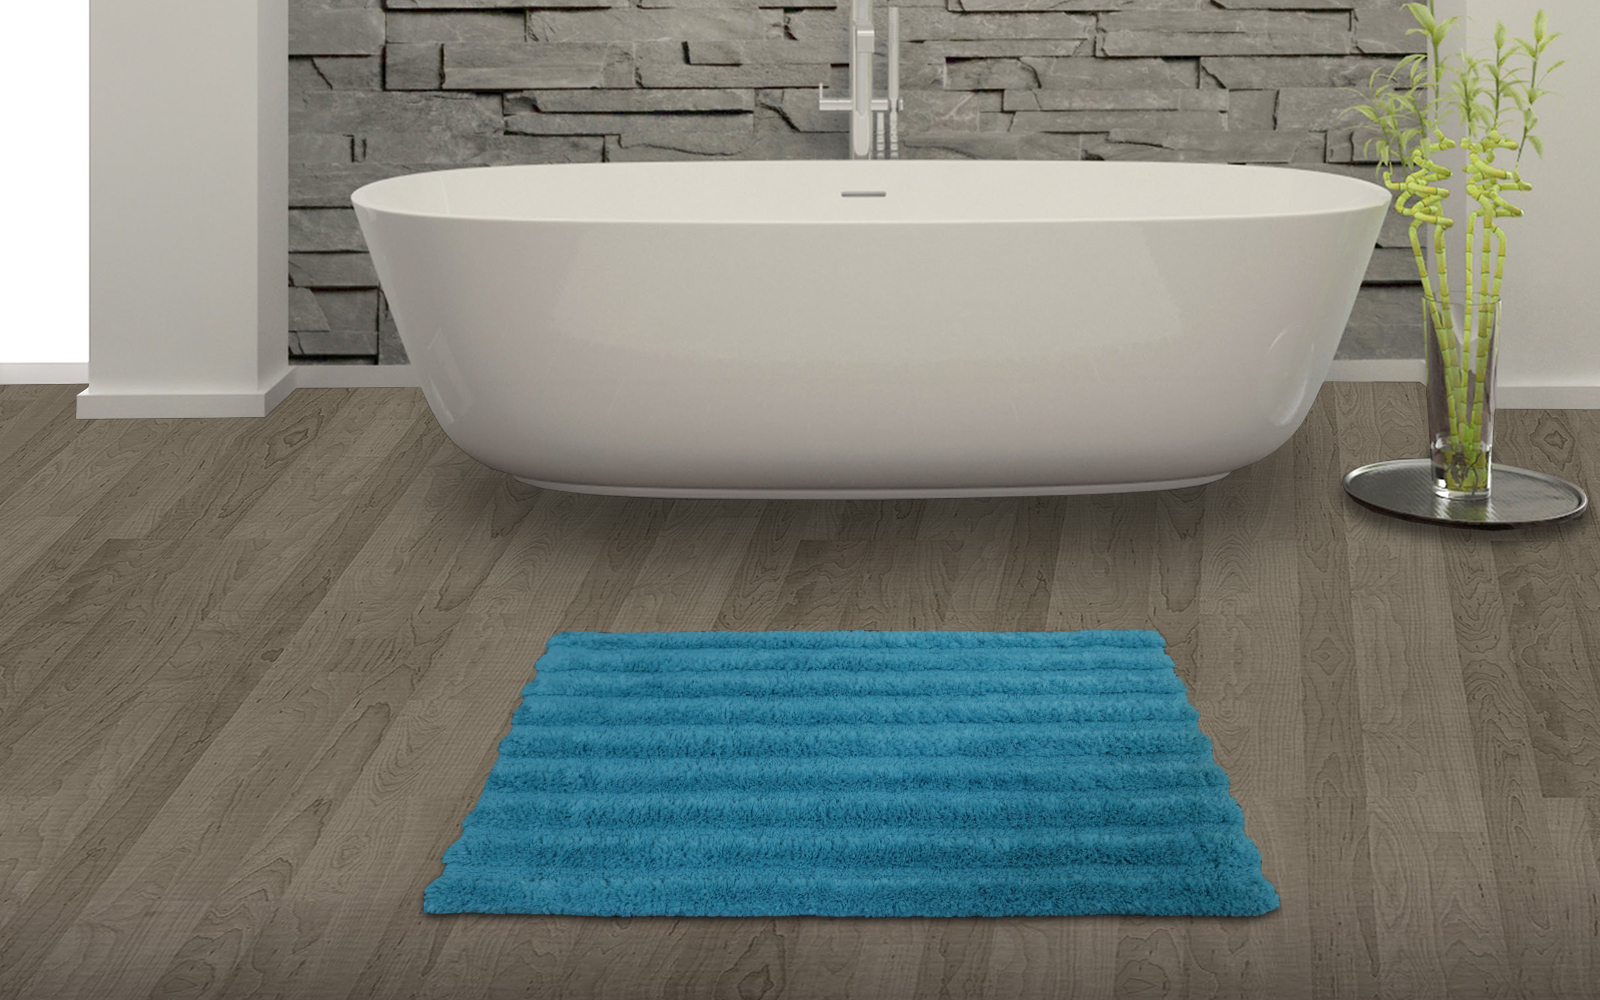 Spaces Swift Dry Turquoise Green Cotton Bath Mat - Small Cotton Bath Mats in Turq. Green Colour by Spaces